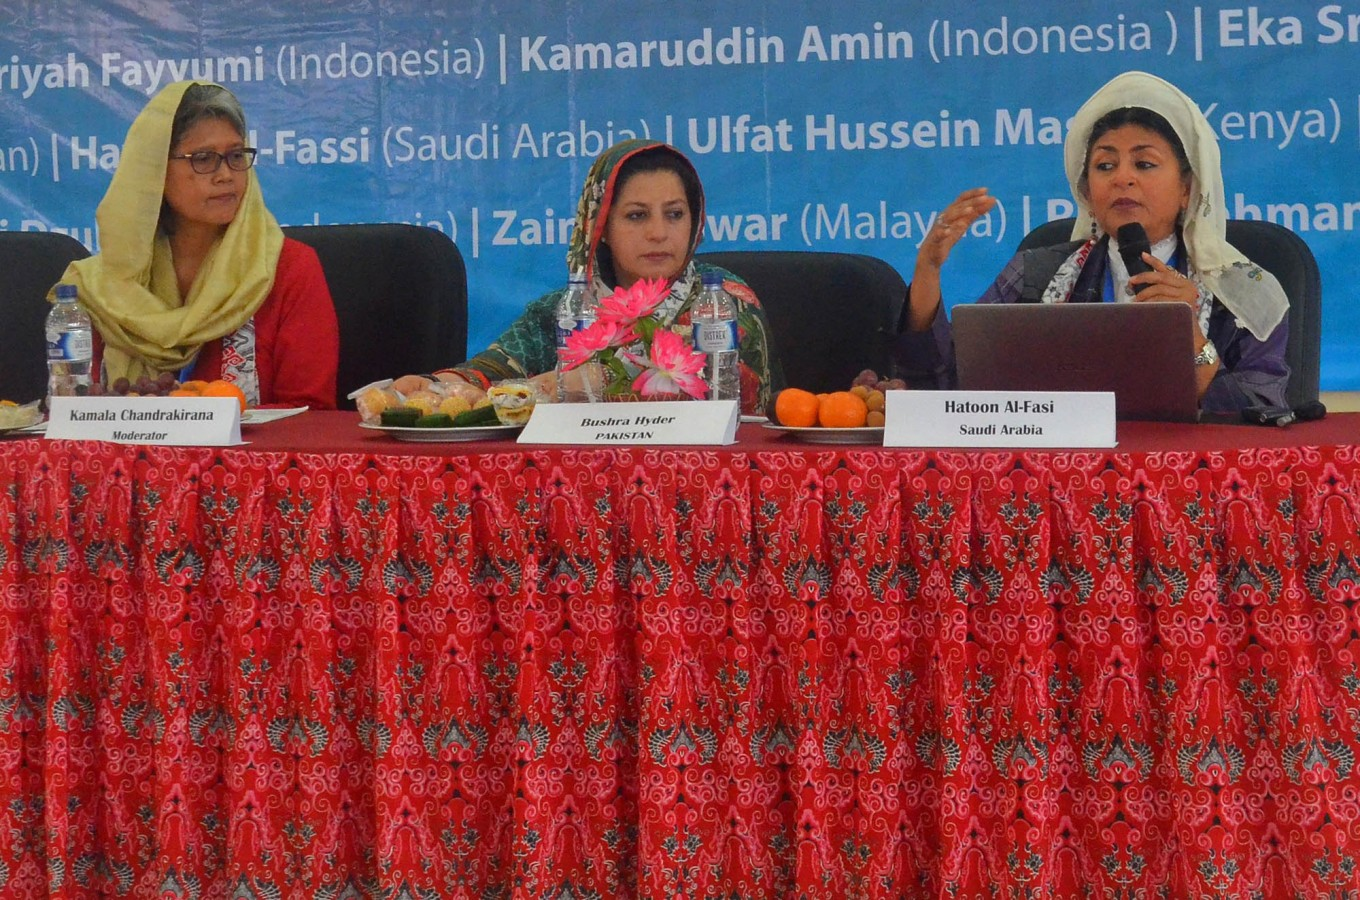 Indonesia's first female Muslim clerics congress aims to strengthen women's roles